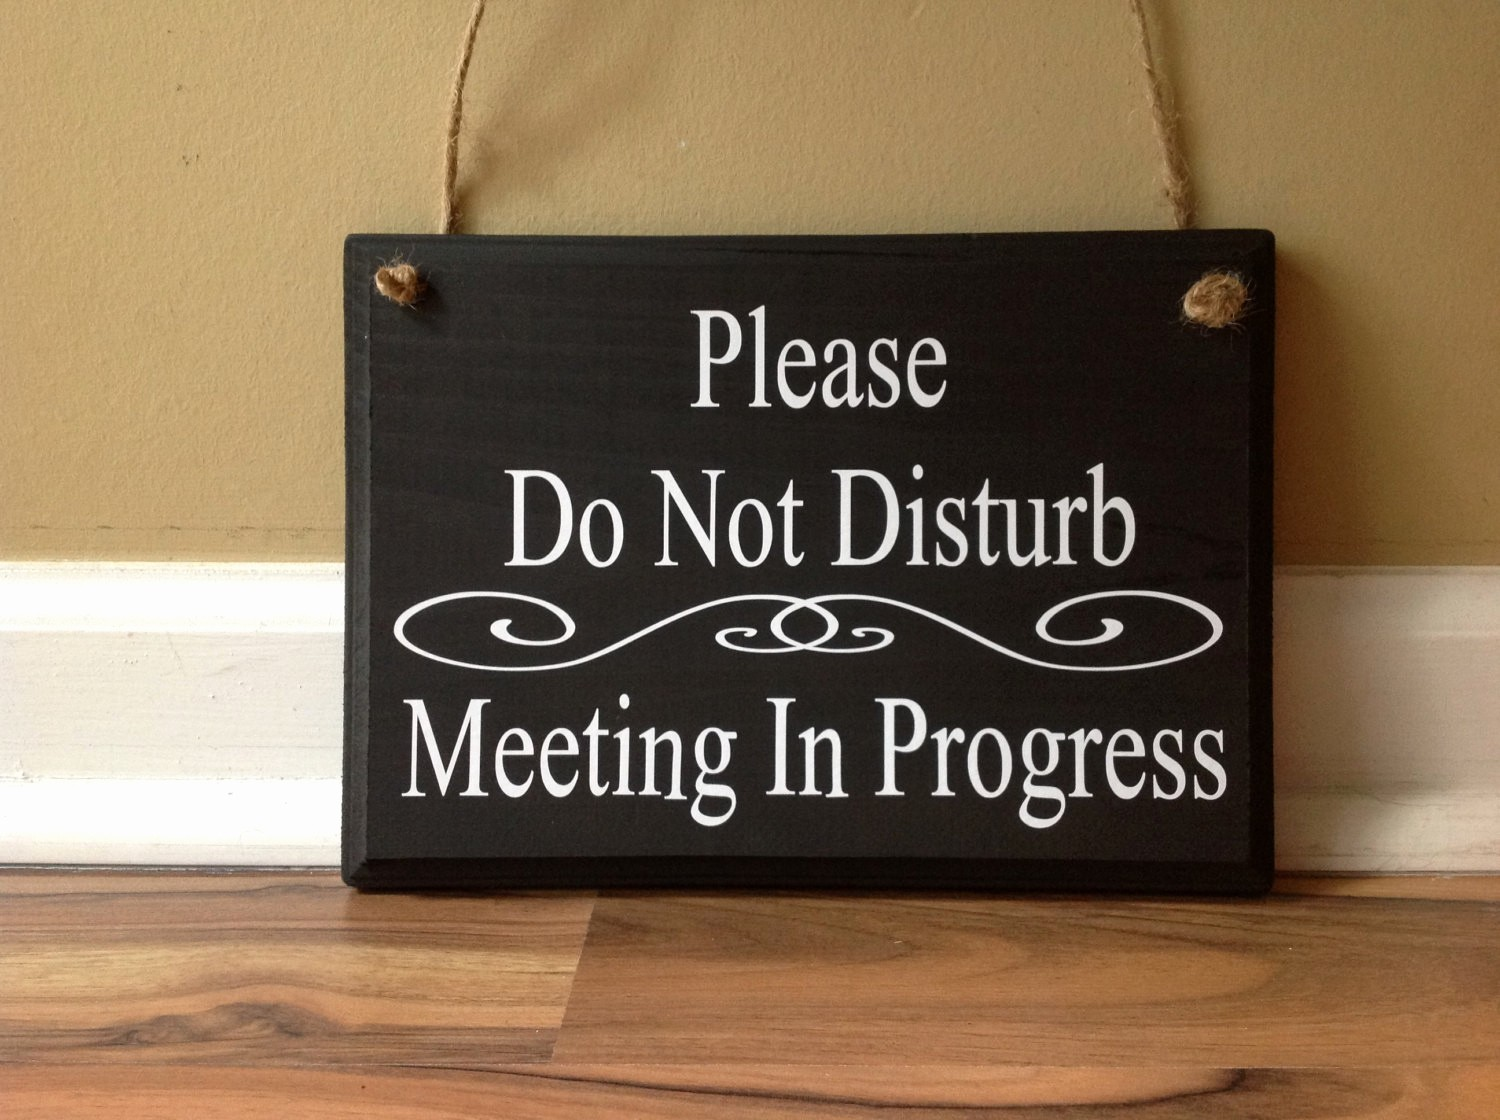 Meeting In Session Door Sign Awesome Please Do Not Disturb Meeting In Progress Wel E Please E